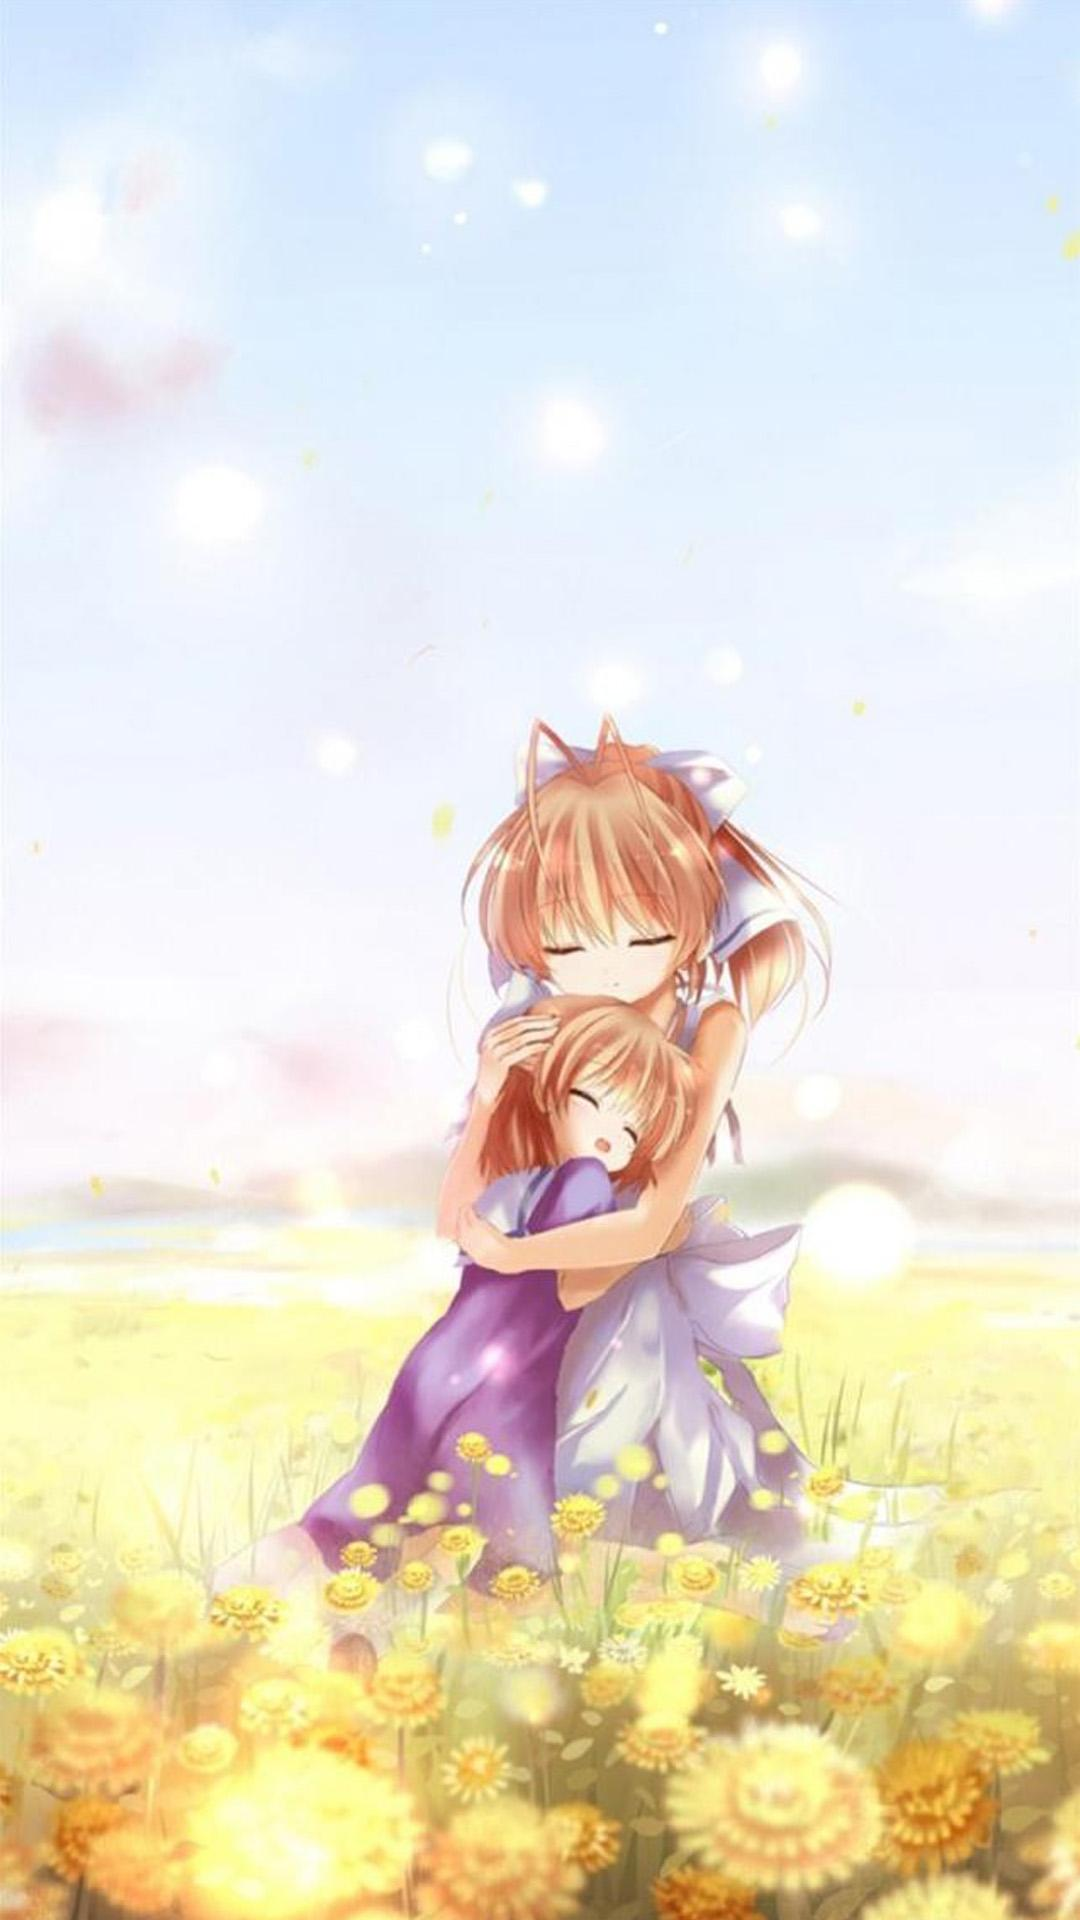 Cute Anime iPhone Wallpapers - Wallpaper Cave